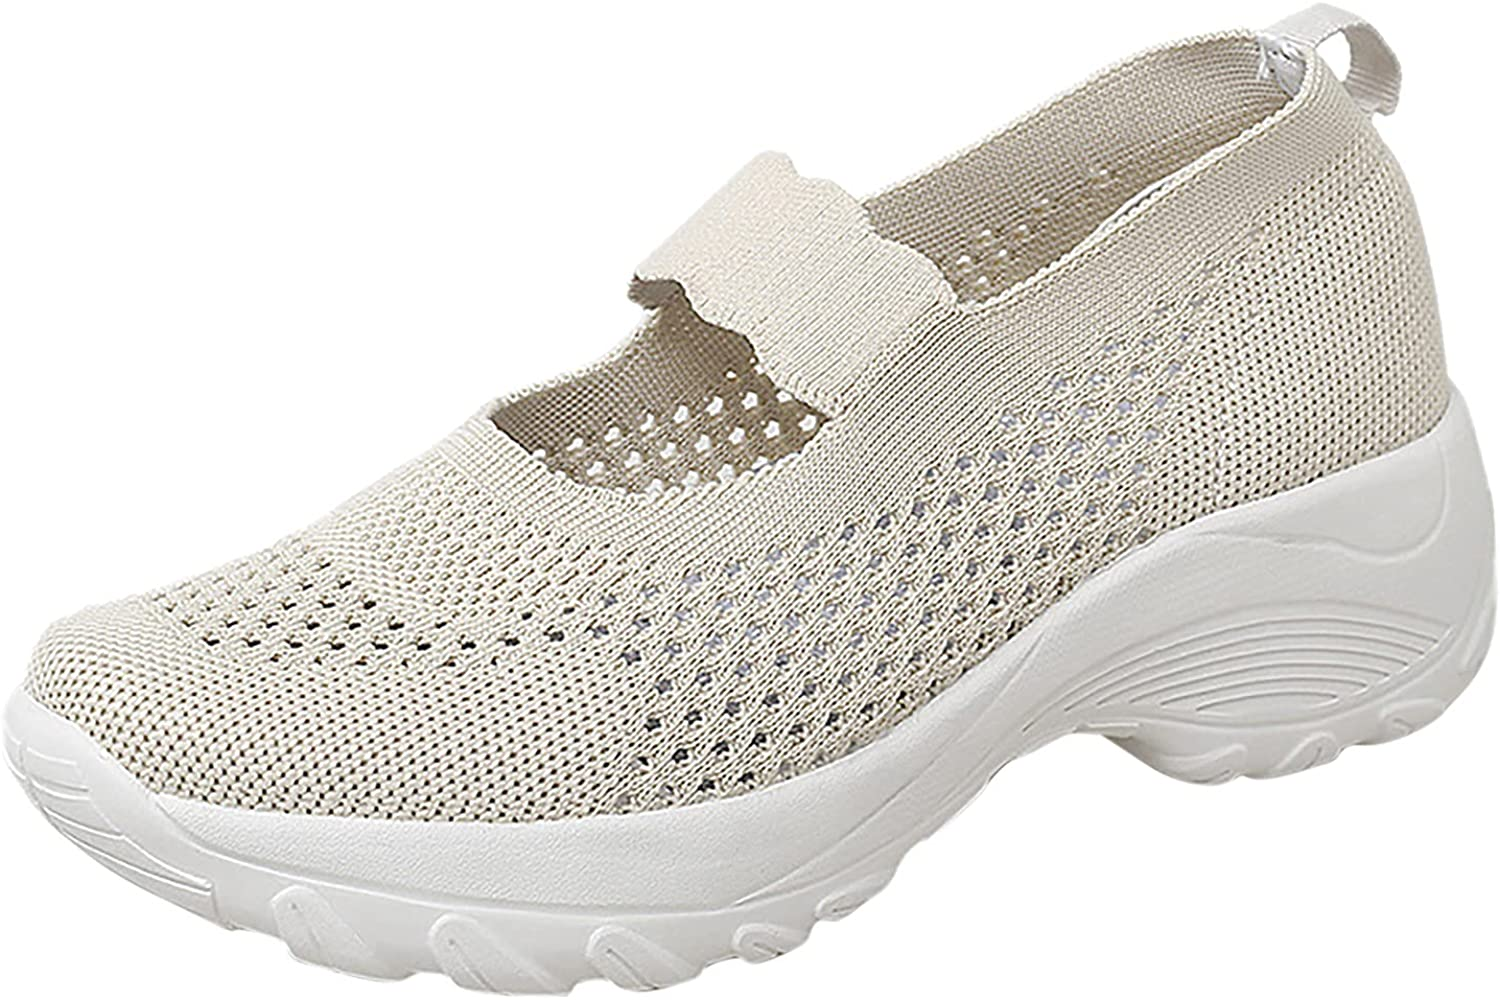 GNiwerb Womens Slip-on Memory Lightweight Sneakers Low Top Tennis Shoes Casual Walking Shoe for Gym Travel Work